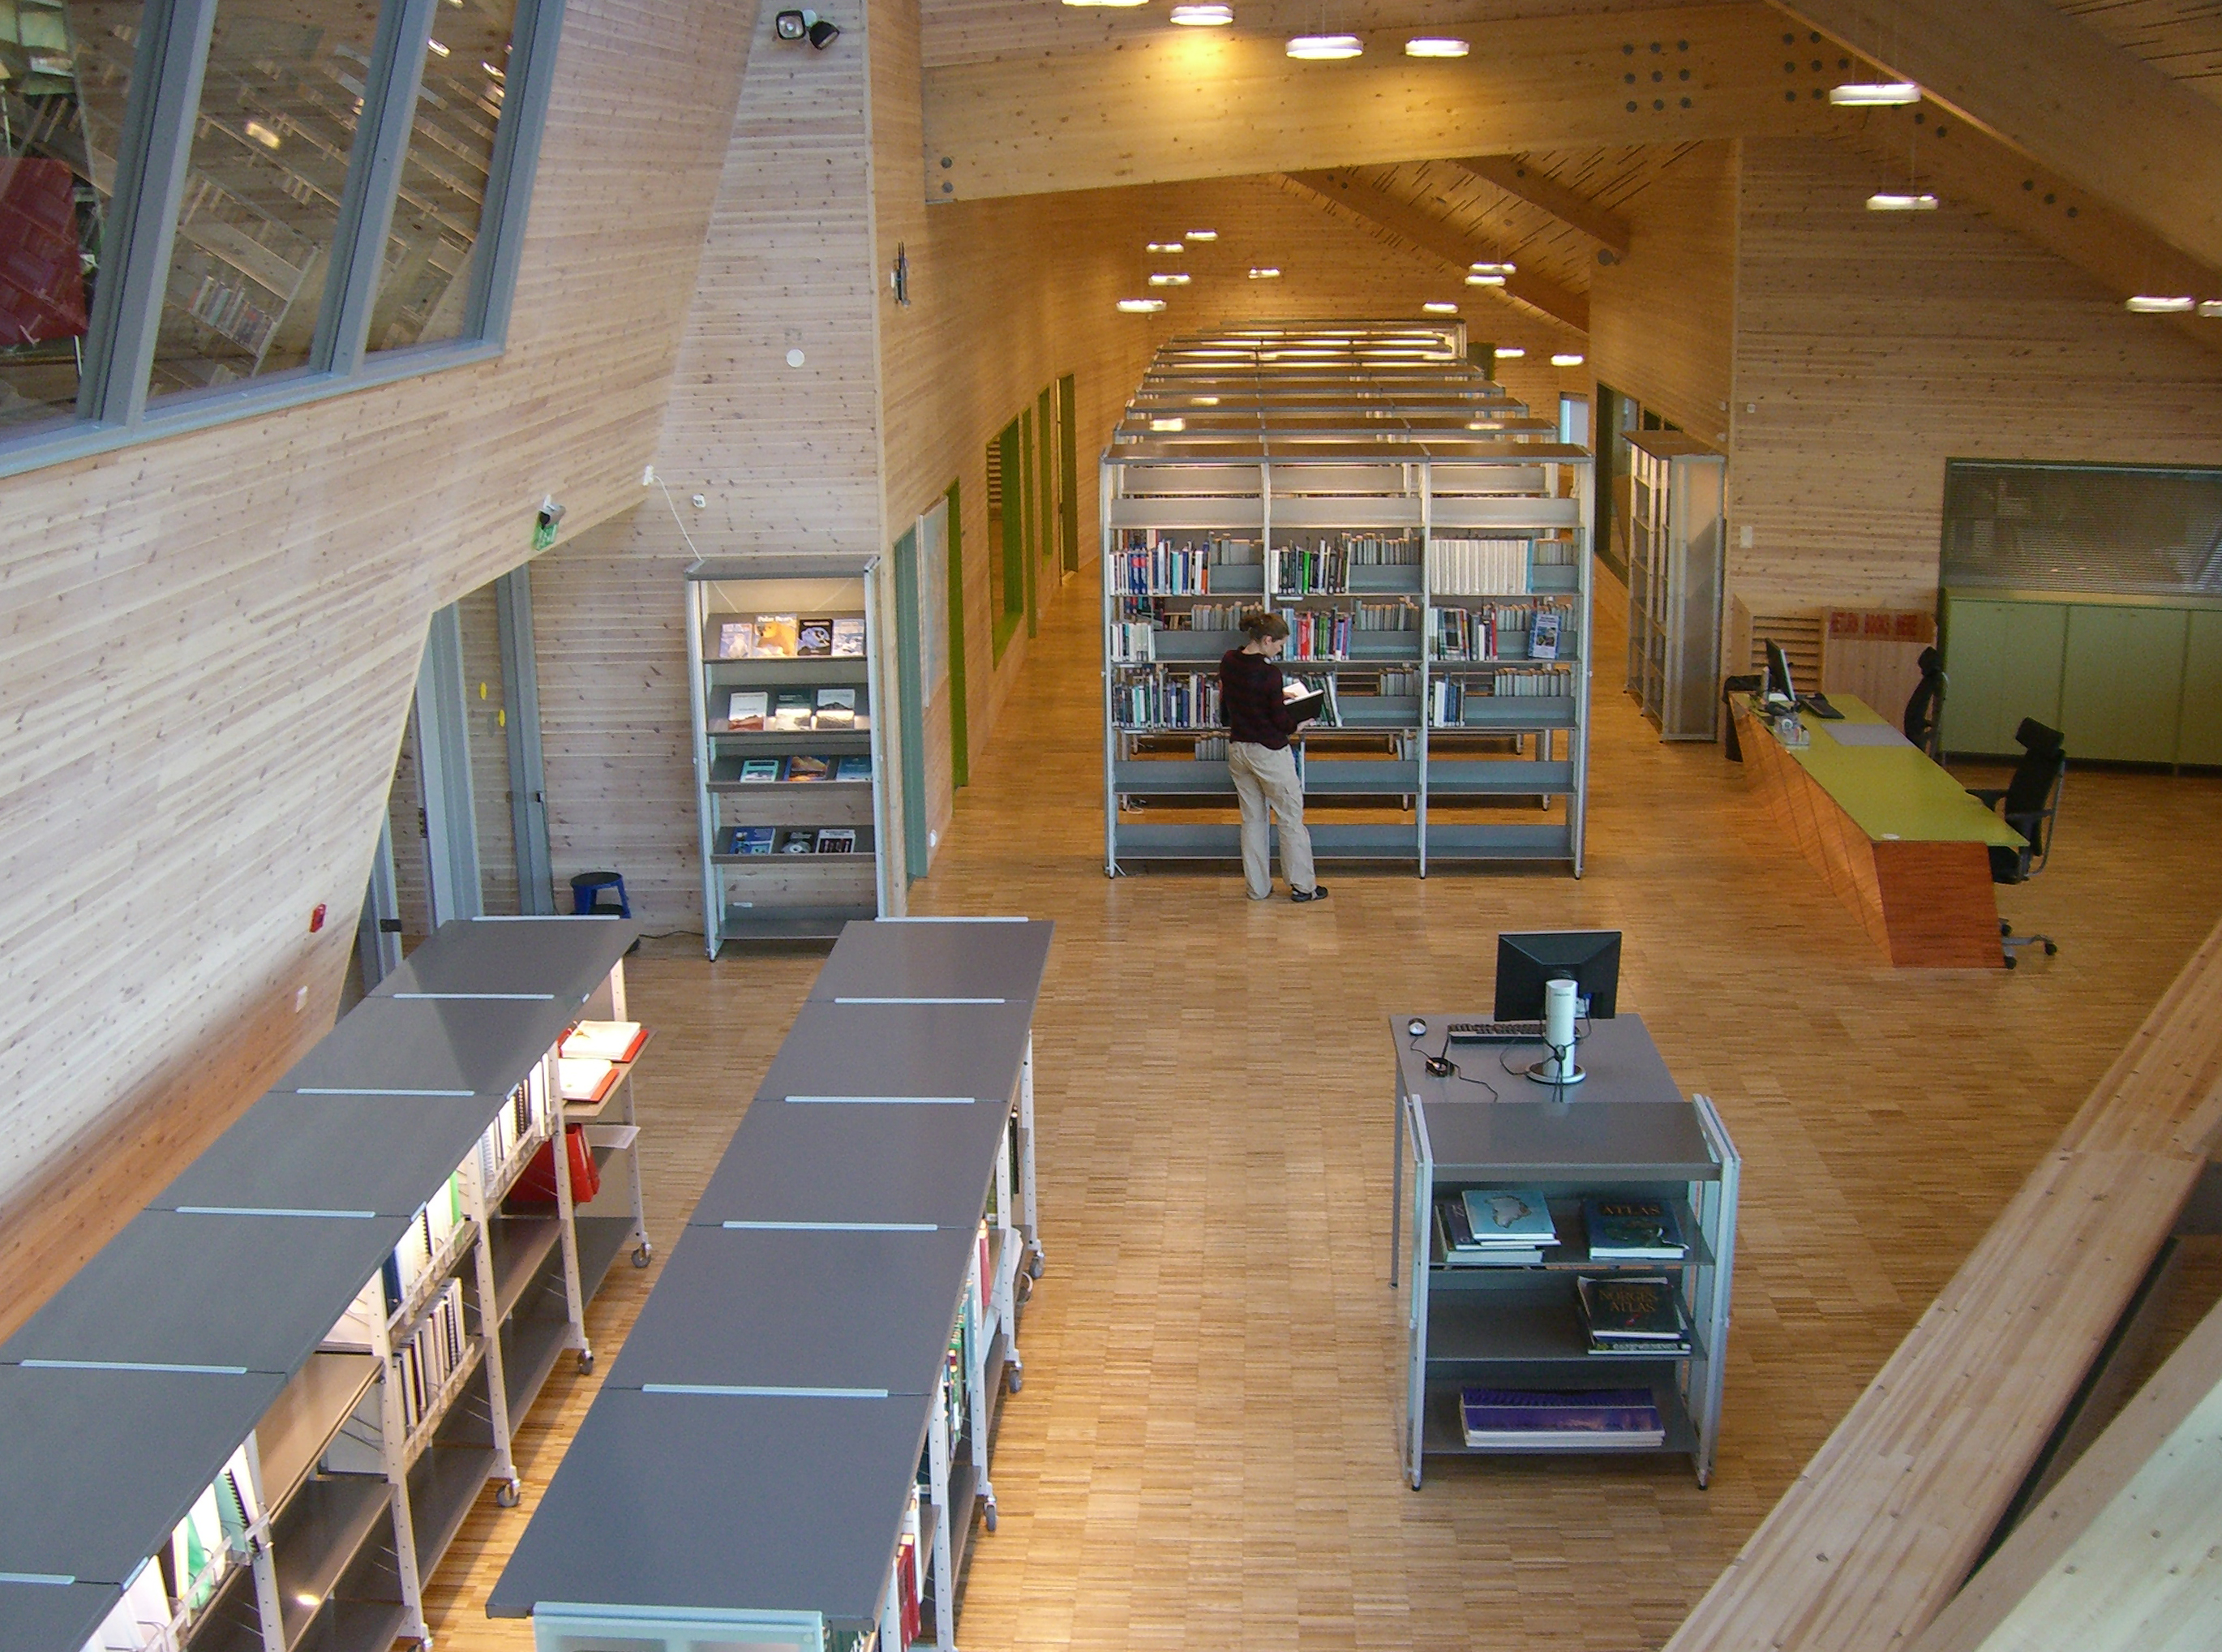 The new UNIS library opened in 2005. (Photo: Michael Matschiner)